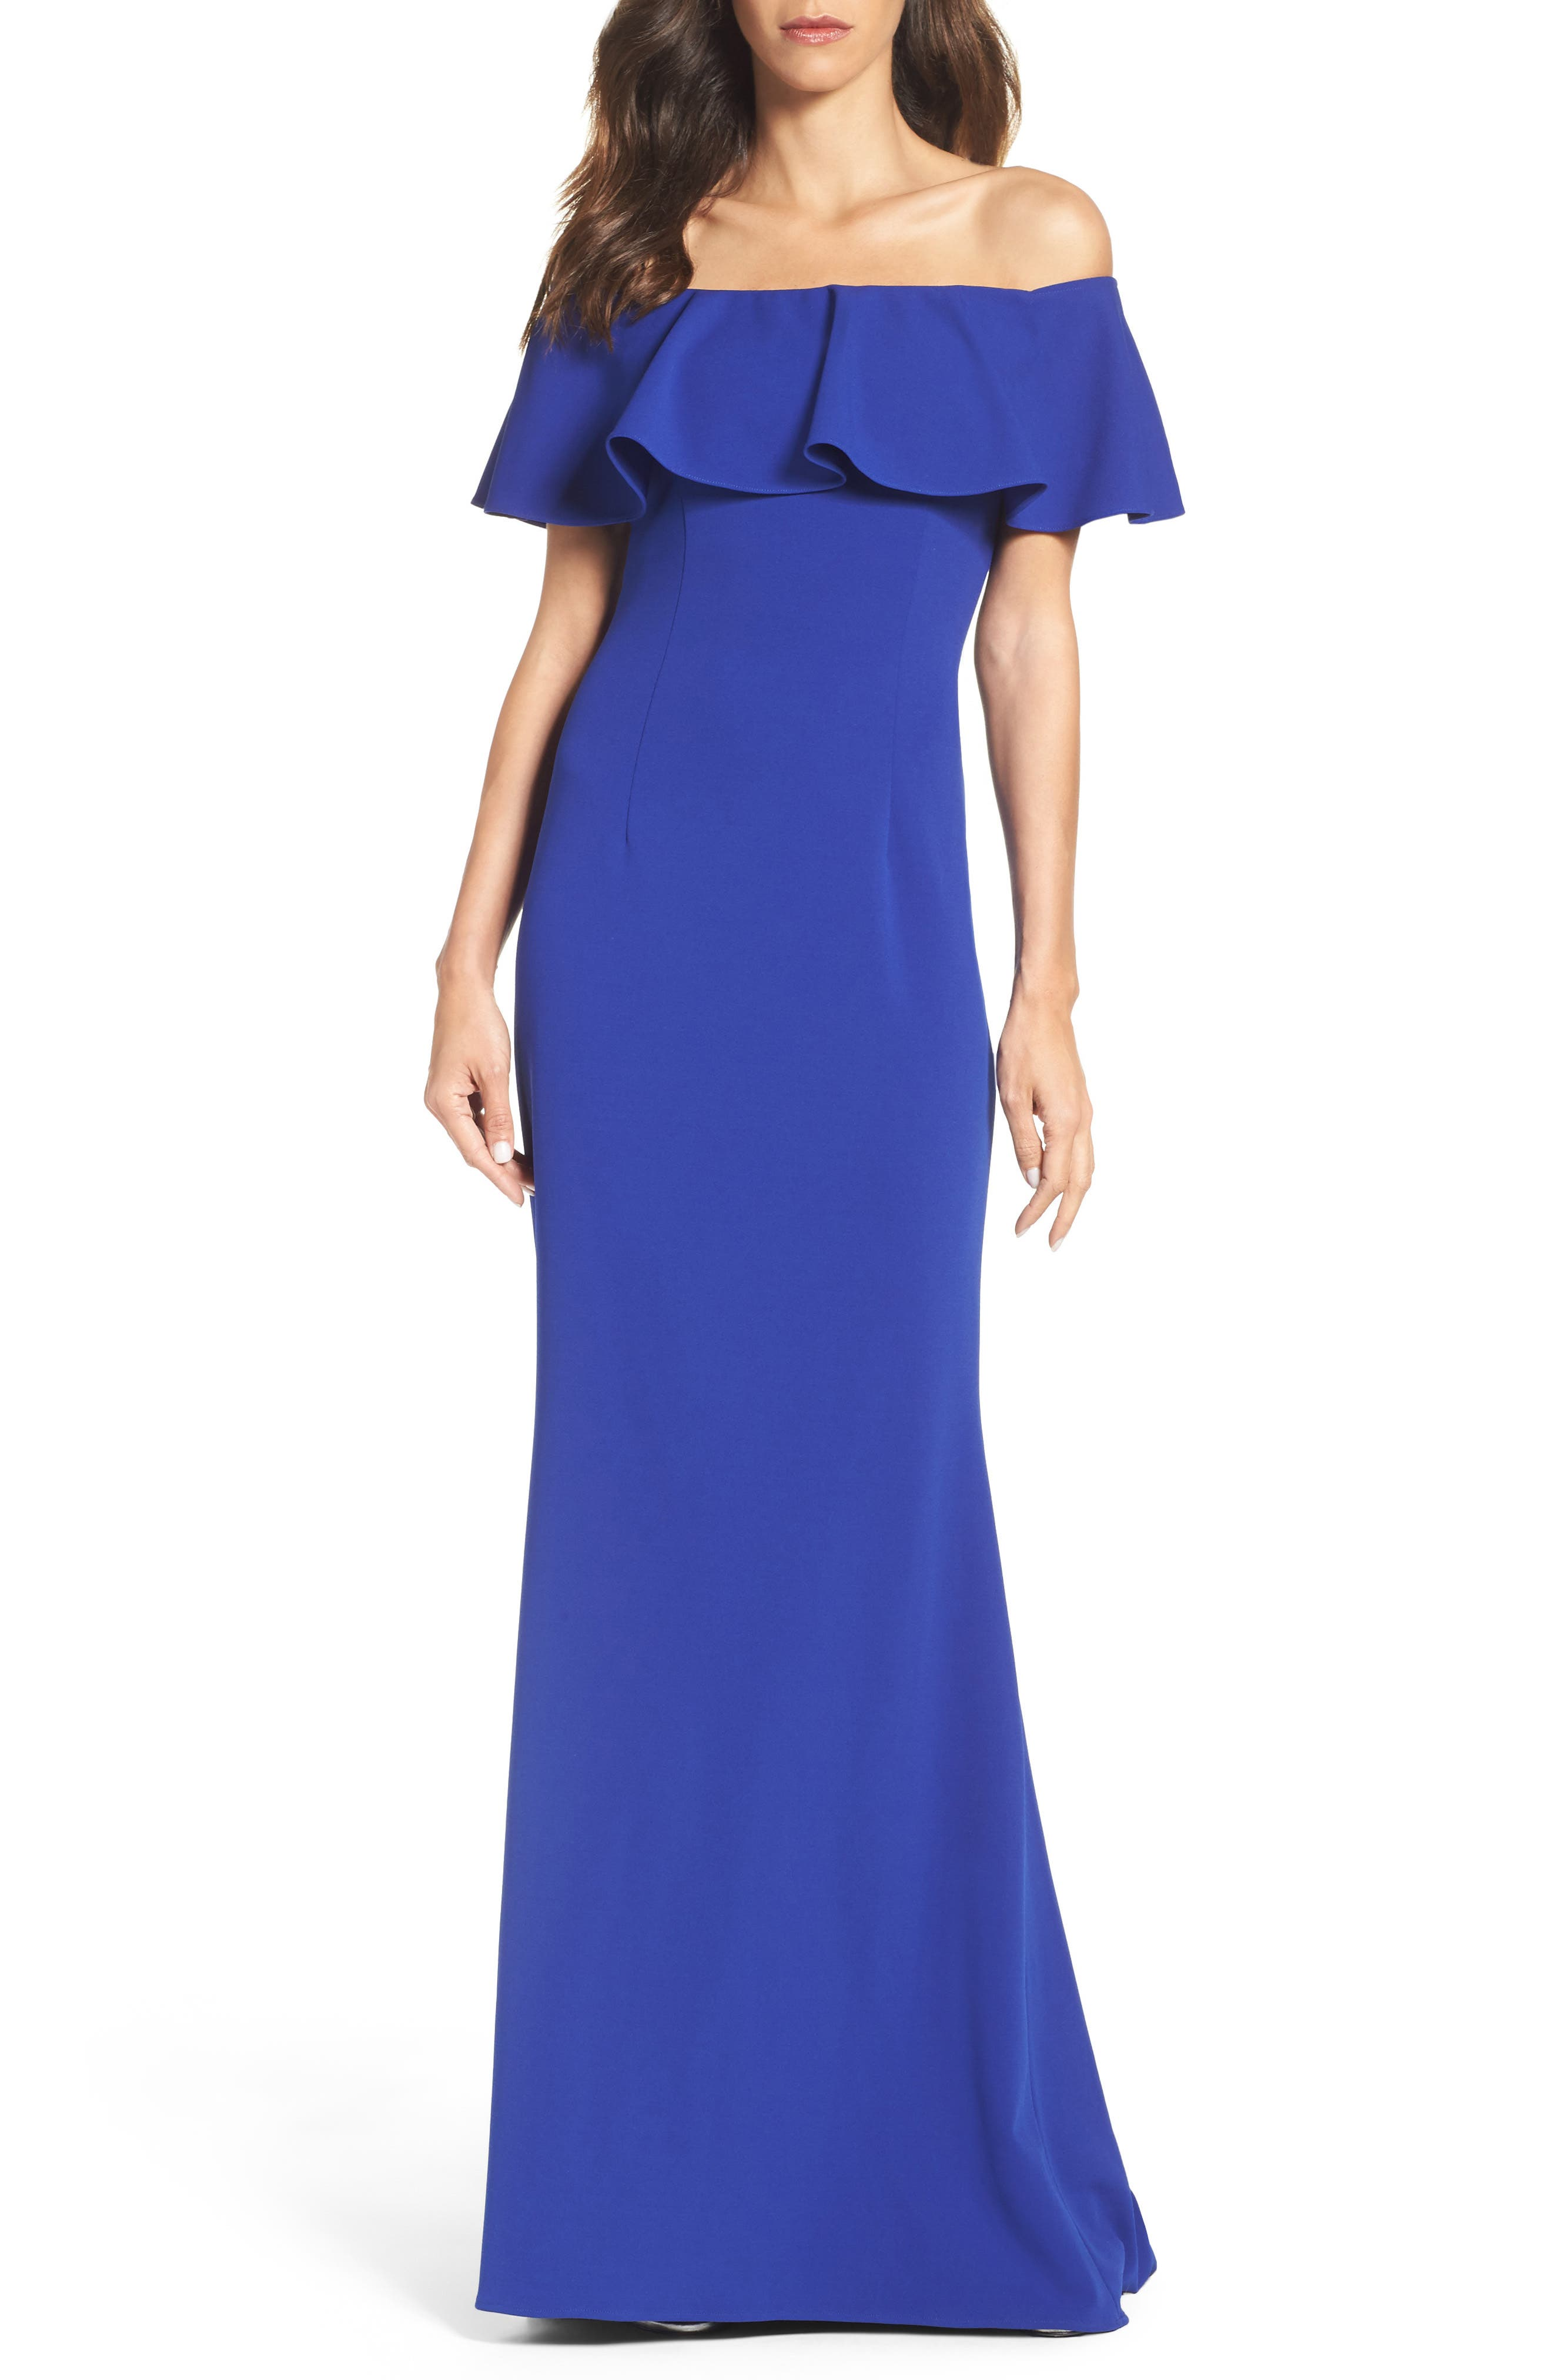 Off the Shoulder Gown,                             Main thumbnail 1, color,                             490